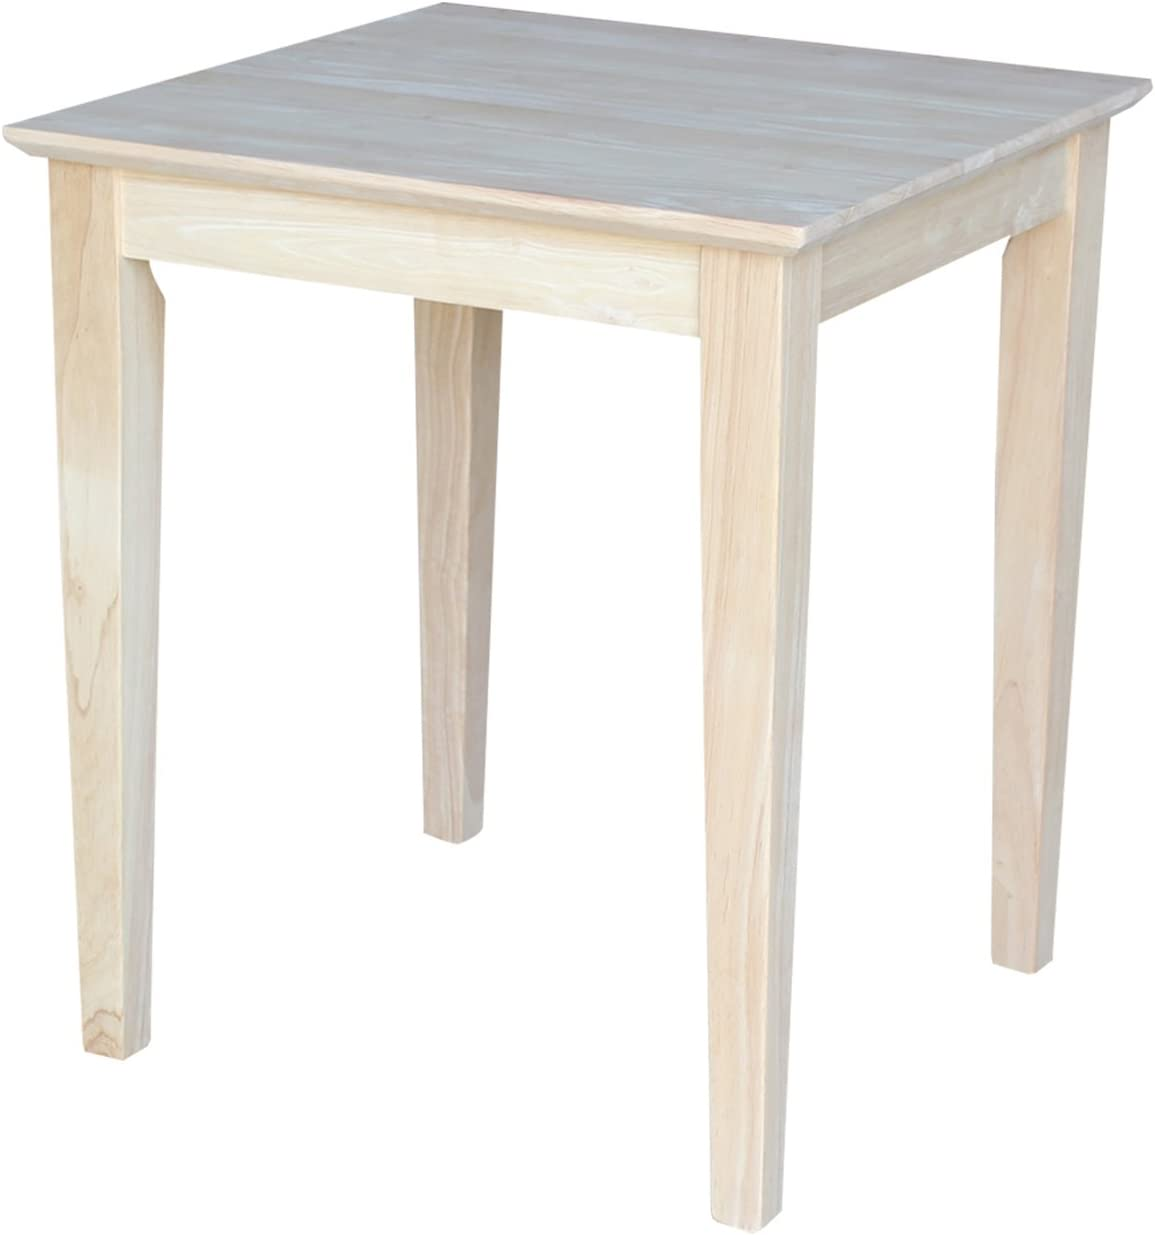 International Concepts Tall Shaker End Table, Unfinished